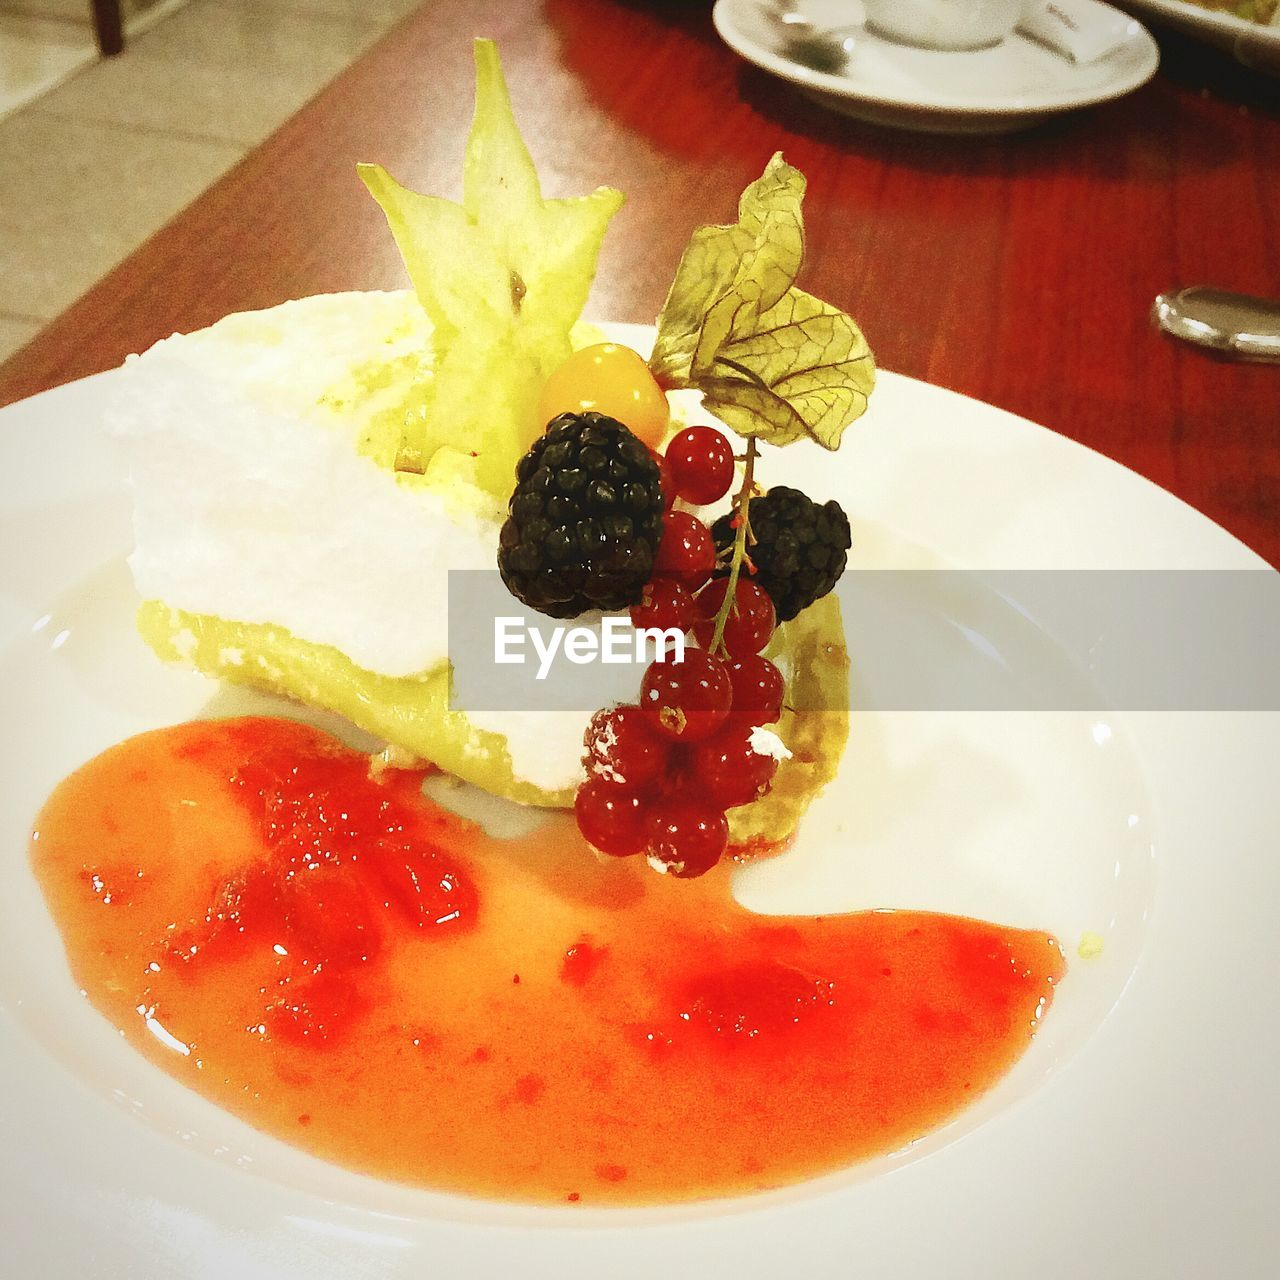 plate, food, food and drink, fruit, indoors, freshness, ready-to-eat, table, healthy eating, no people, close-up, dessert, sweet food, day